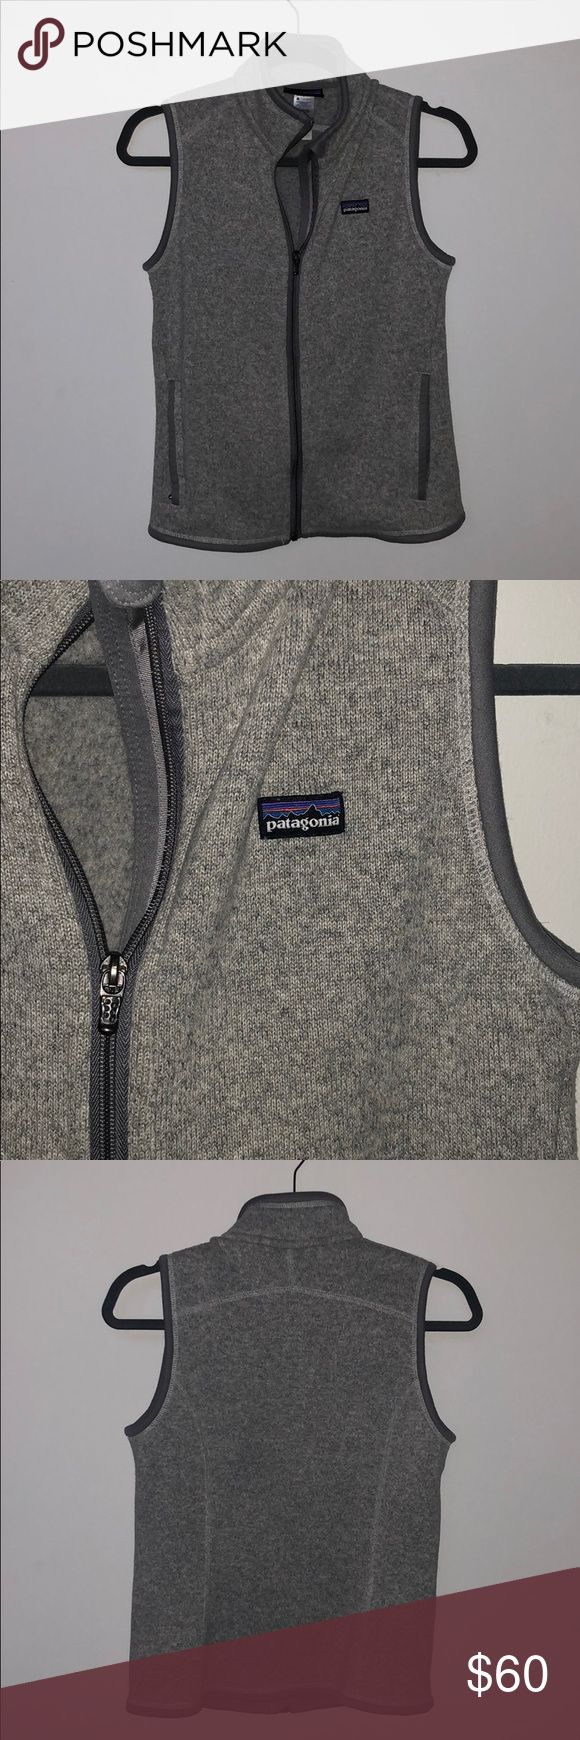 Patagonia Better Sweater Vest NWOT, warm, lightweight, sweater vest Patagonia Jackets & Coats Vests